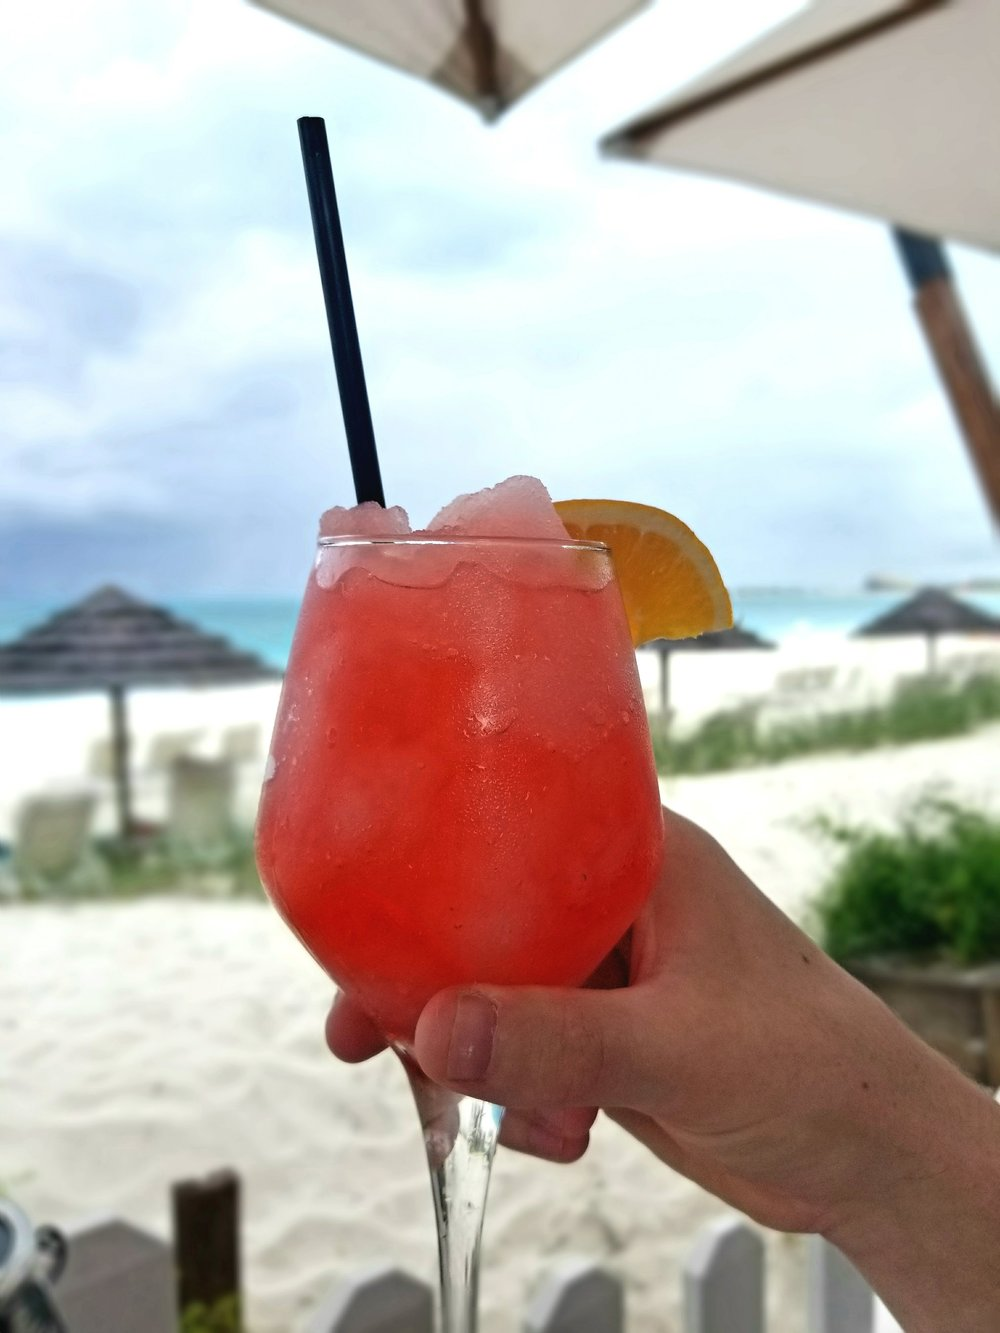 We went for Happy Hour and stayed for several hours.  The frozes at The Deck @ Seven Stars Resort are light, refreshing, come with a solid pour and epic view.  Be sure to bring a cover up.